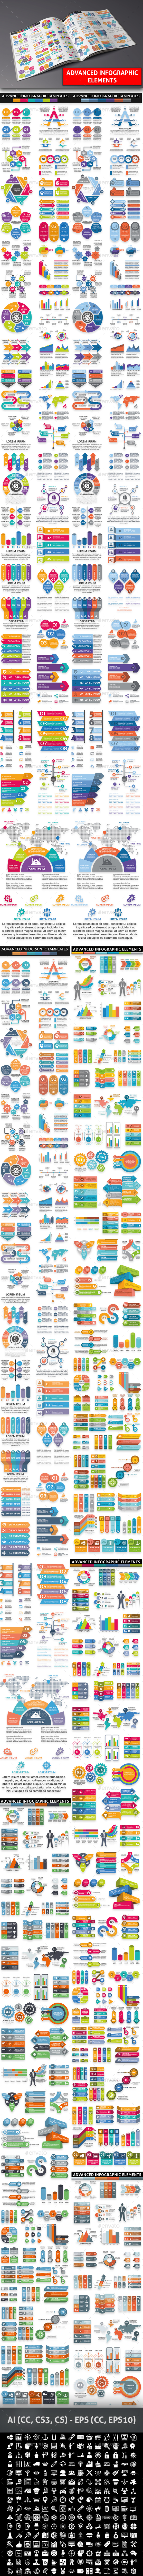 GraphicRiver Bundle Advanced Infographic Elements 21001691